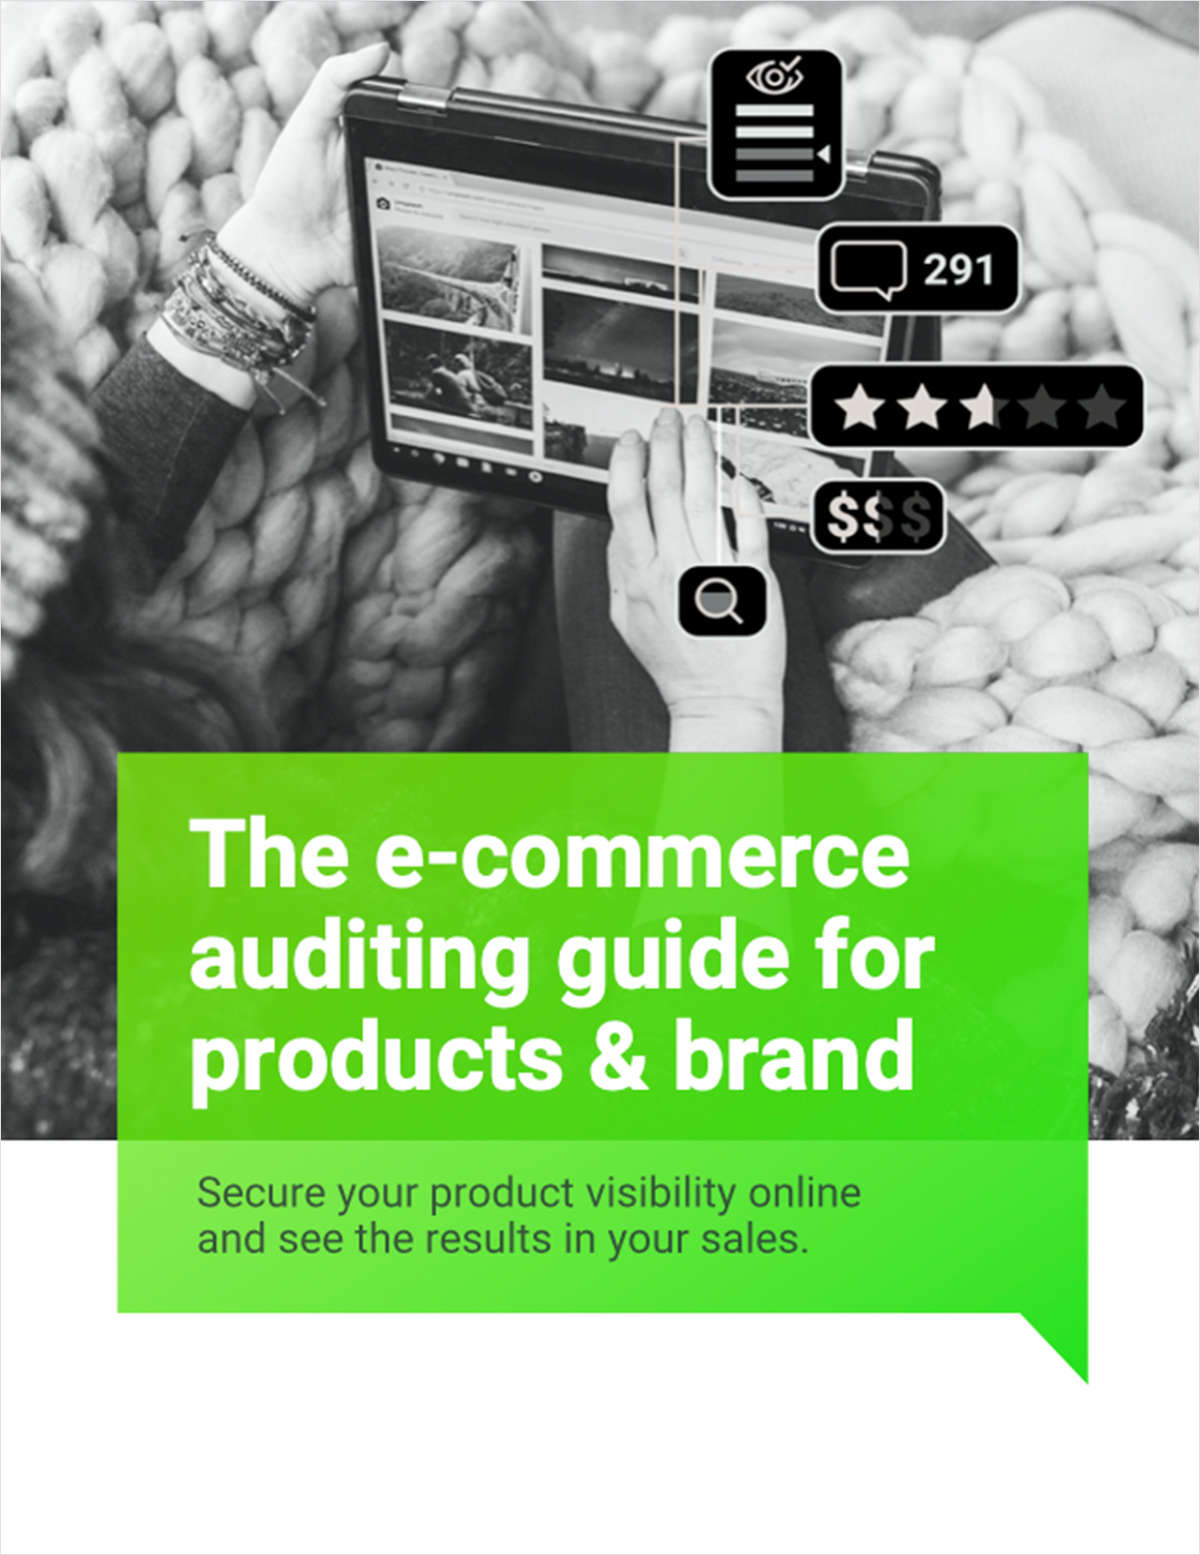 The e-commerce auditing guide for products &brand